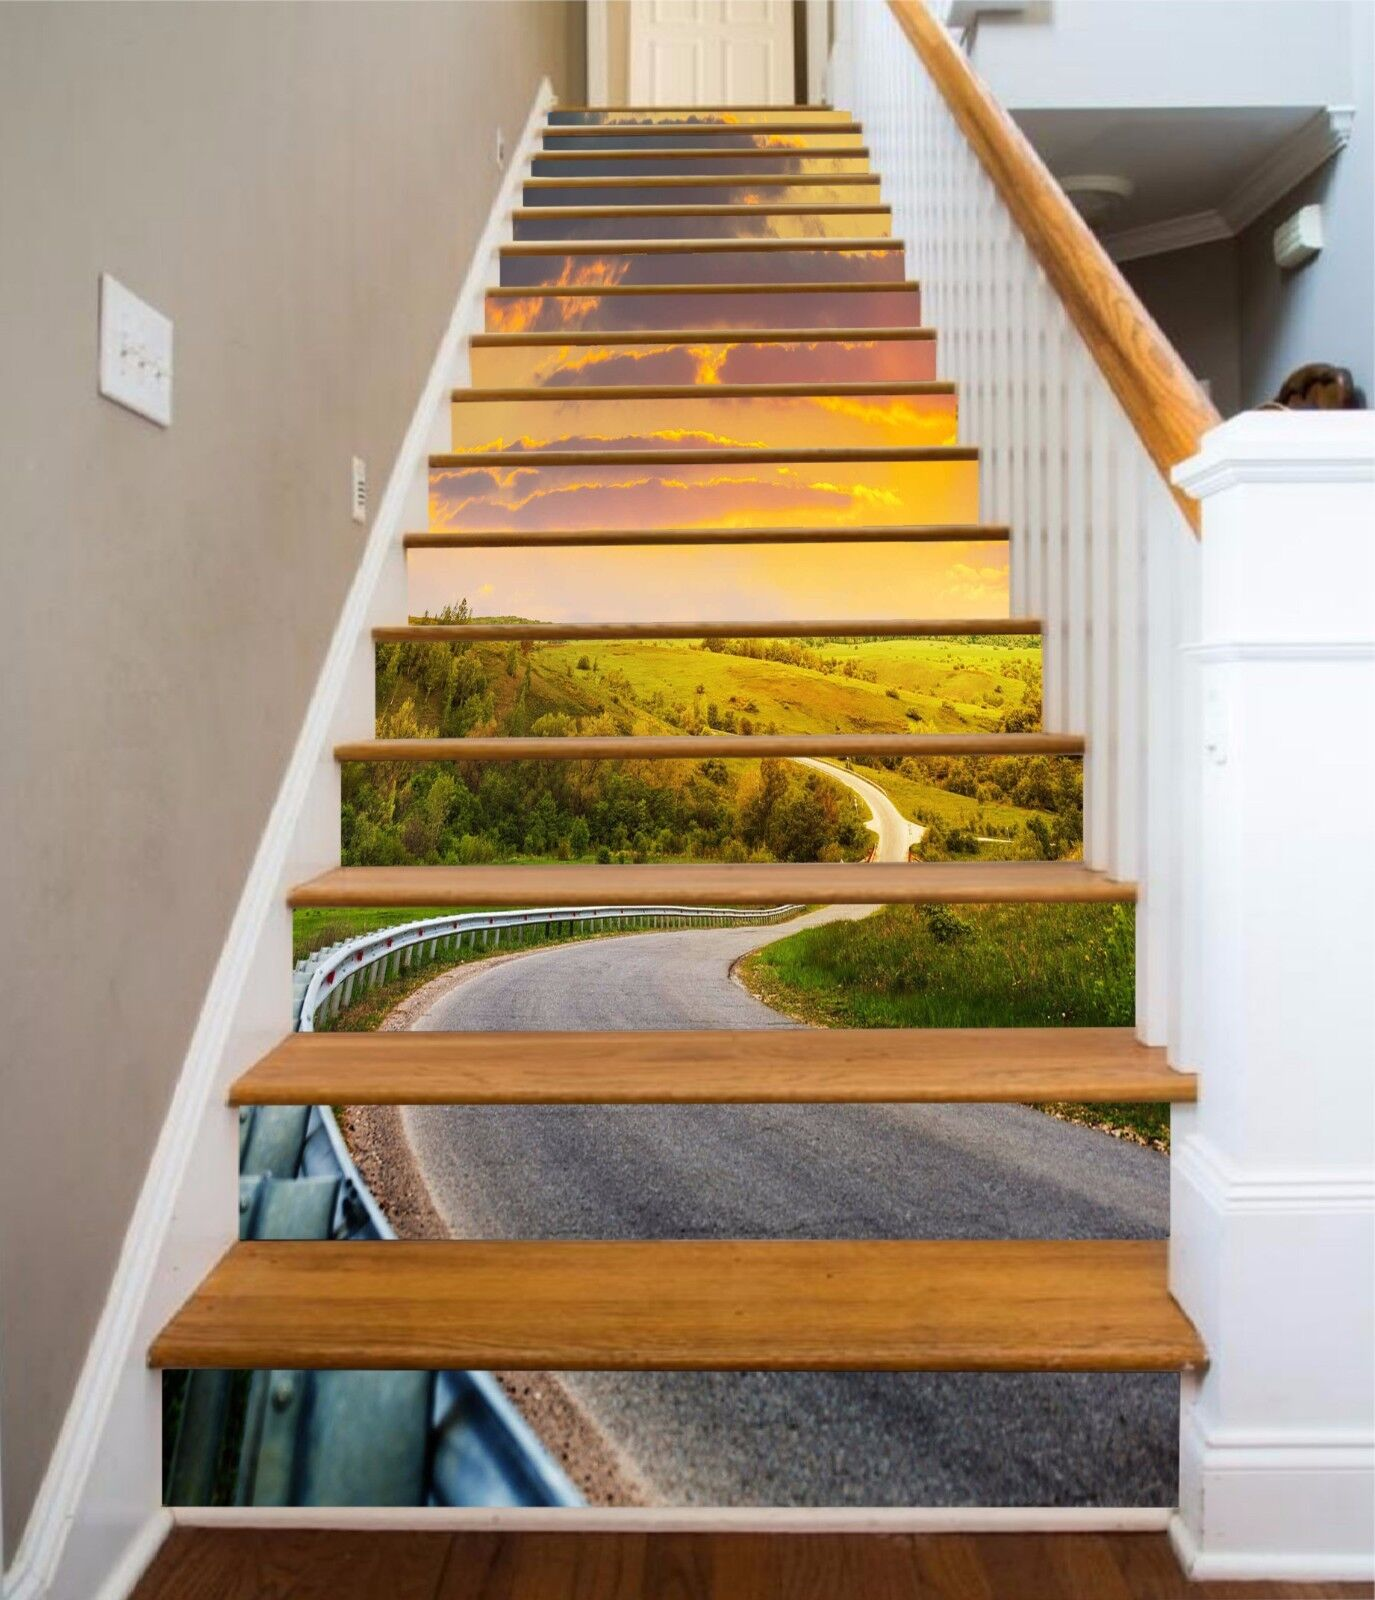 3D Pretty Highway 76Stair Risers Decoration Photo Mural Vinyl Decal Wallpaper AU